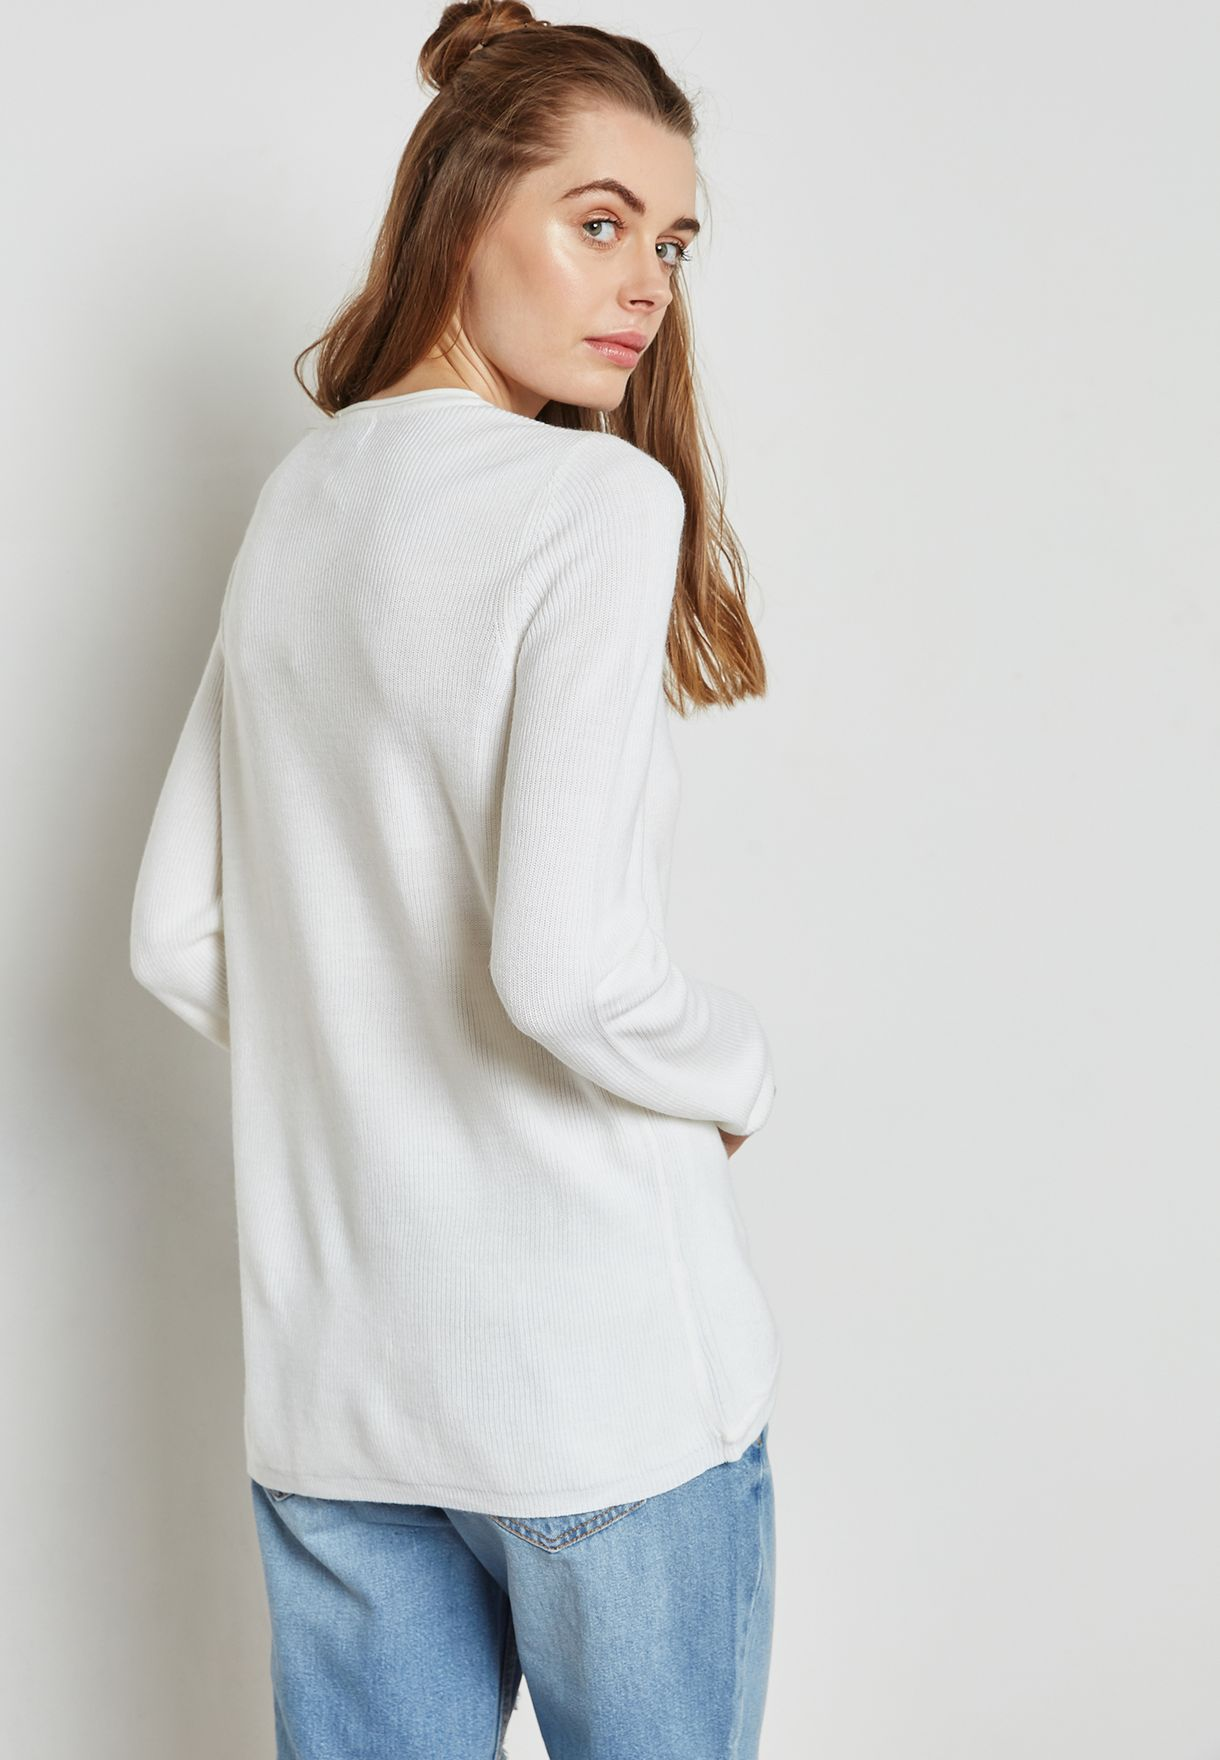 Wrapped Sweater